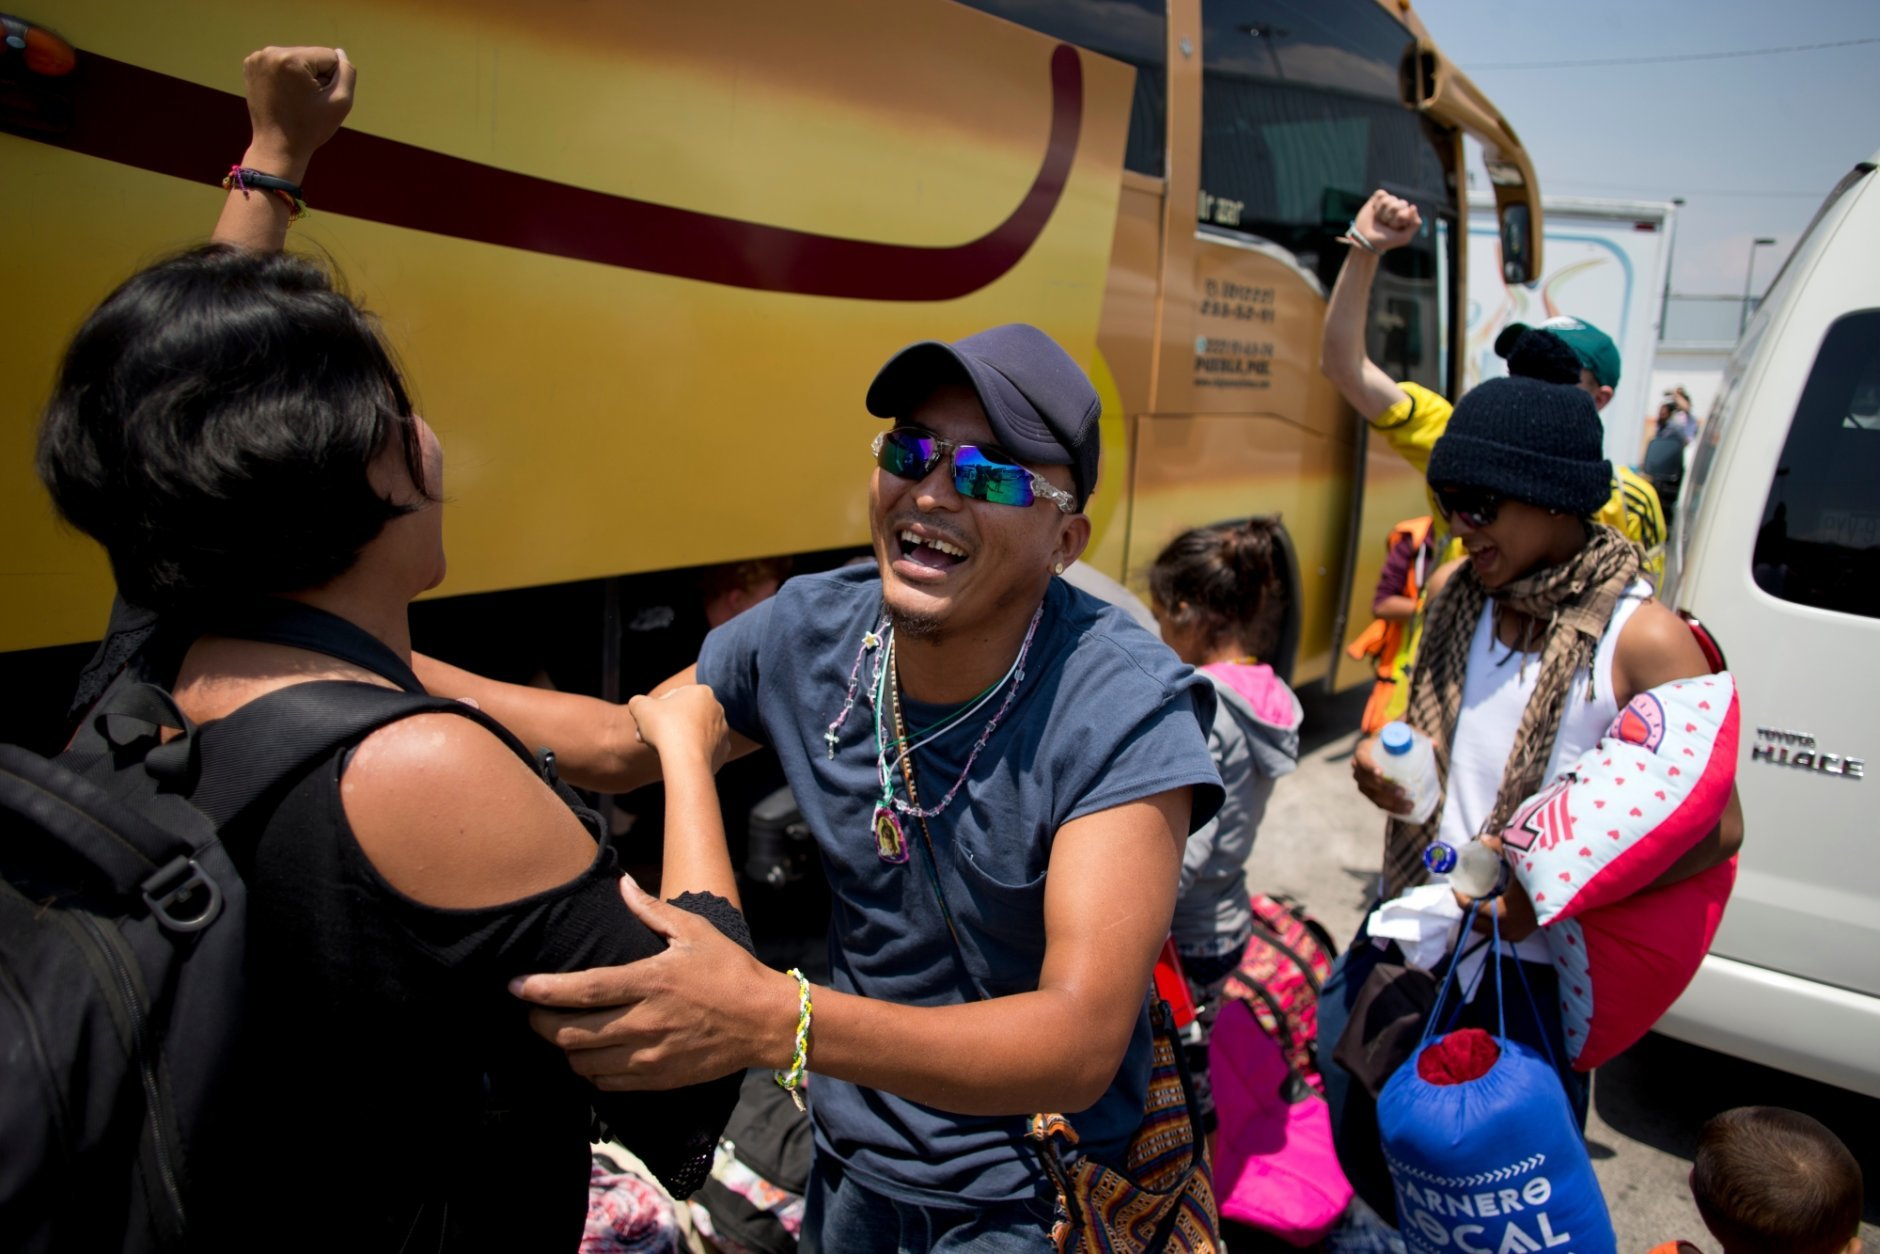 In this Monday, April 9, 2018 photo, Central American migrants who took part in the annual Migrants Stations of the Cross caravan are greeted upon arrival to a shelter in Mexico City. About 600 remaining participants in the migrant caravan that drew President Donald Trump's ire made their last stop Saturday in Mexico City to give thanks to the Virgin of Guadalupe. (AP Photo/Eduardo Verdugo)